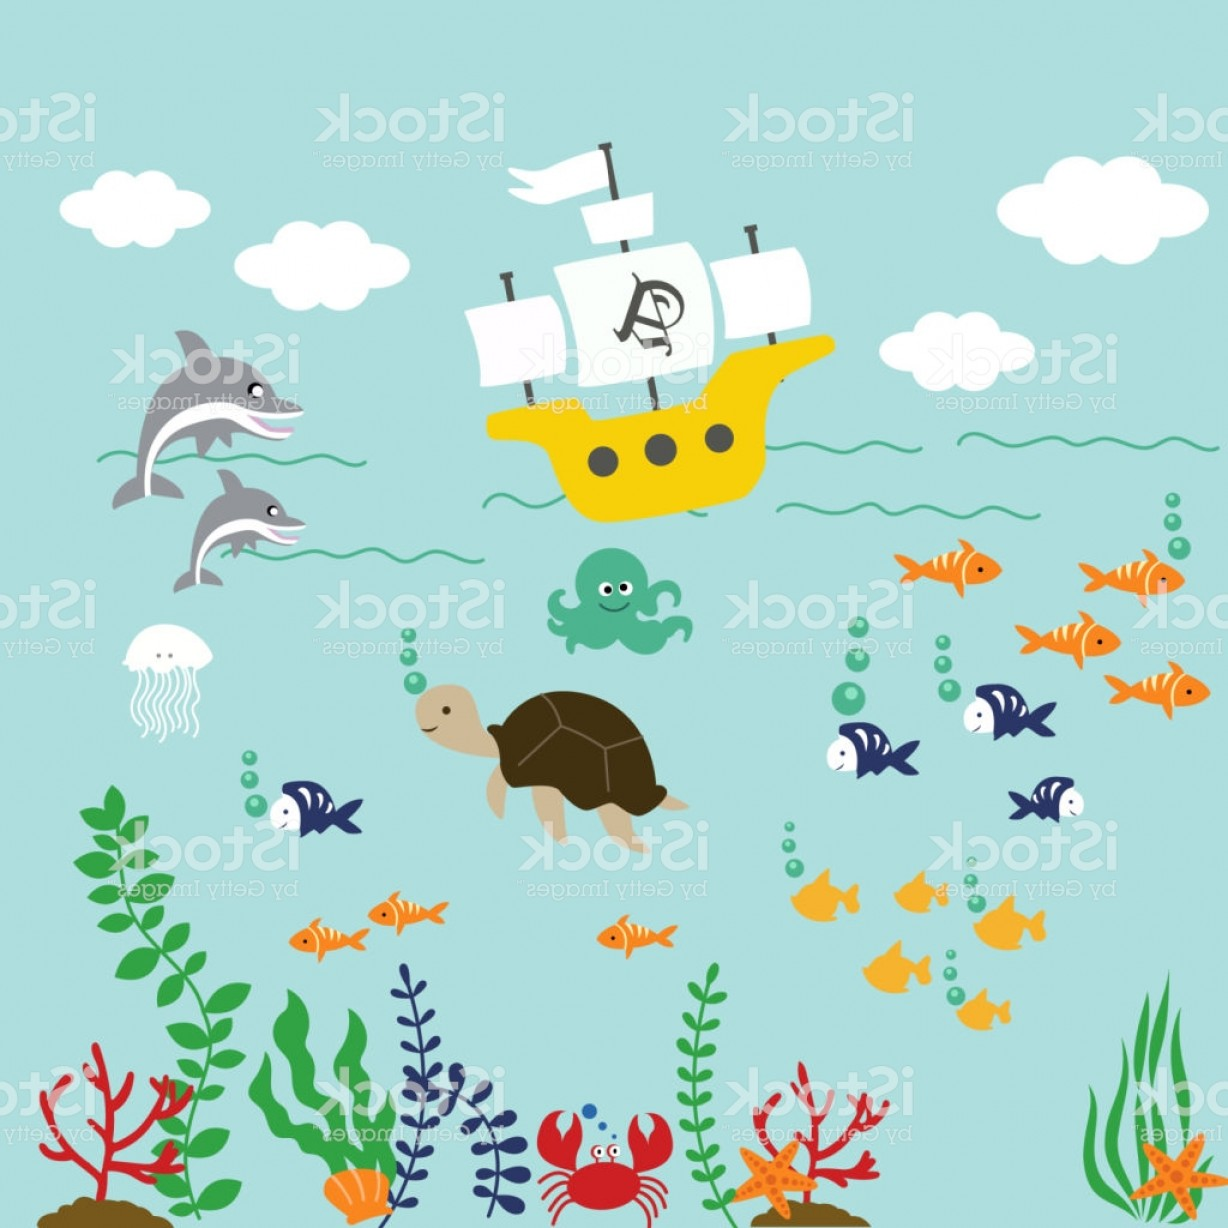 Underwater world clipart clipart royalty free download Cartoon Underwater World With Fish Plants And Ship Vector ... clipart royalty free download